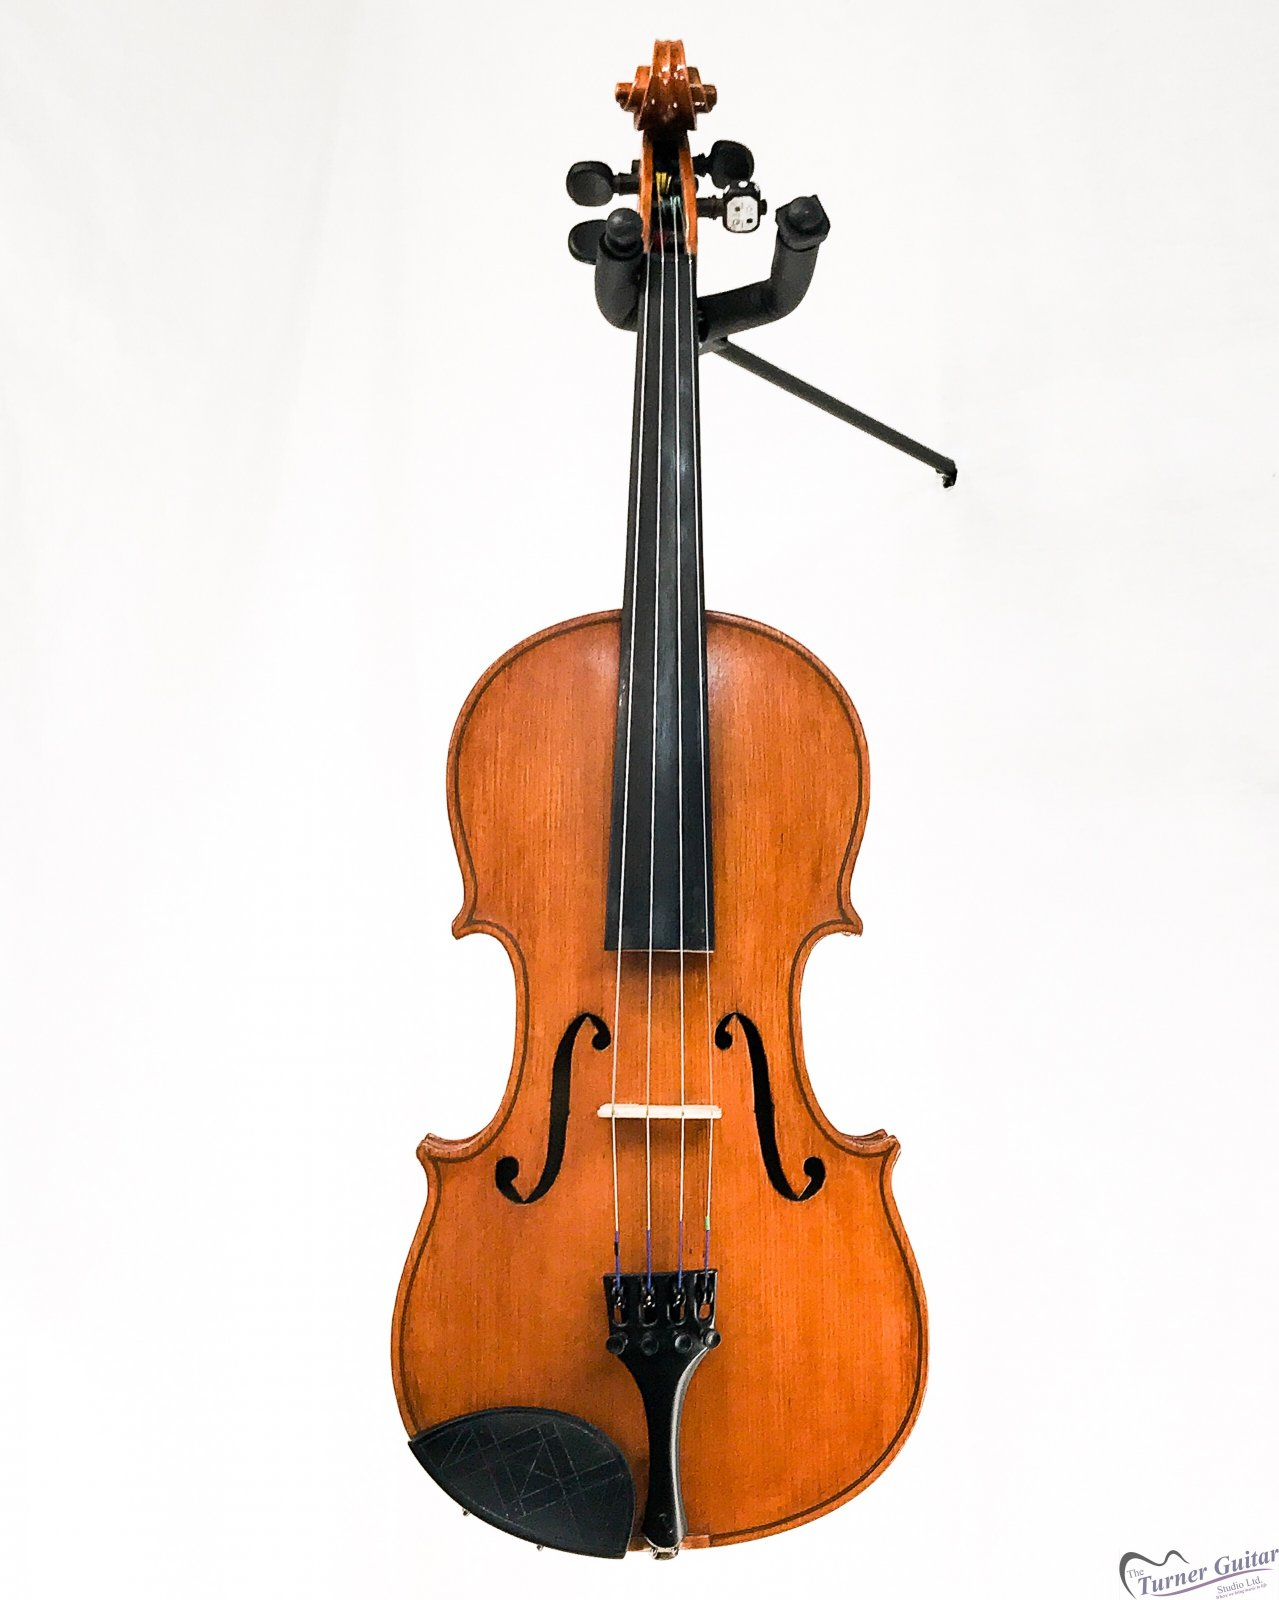 Unknown Make Hand Crafted Violin - Excellent Condition Used - Deluxe Hardshell Case